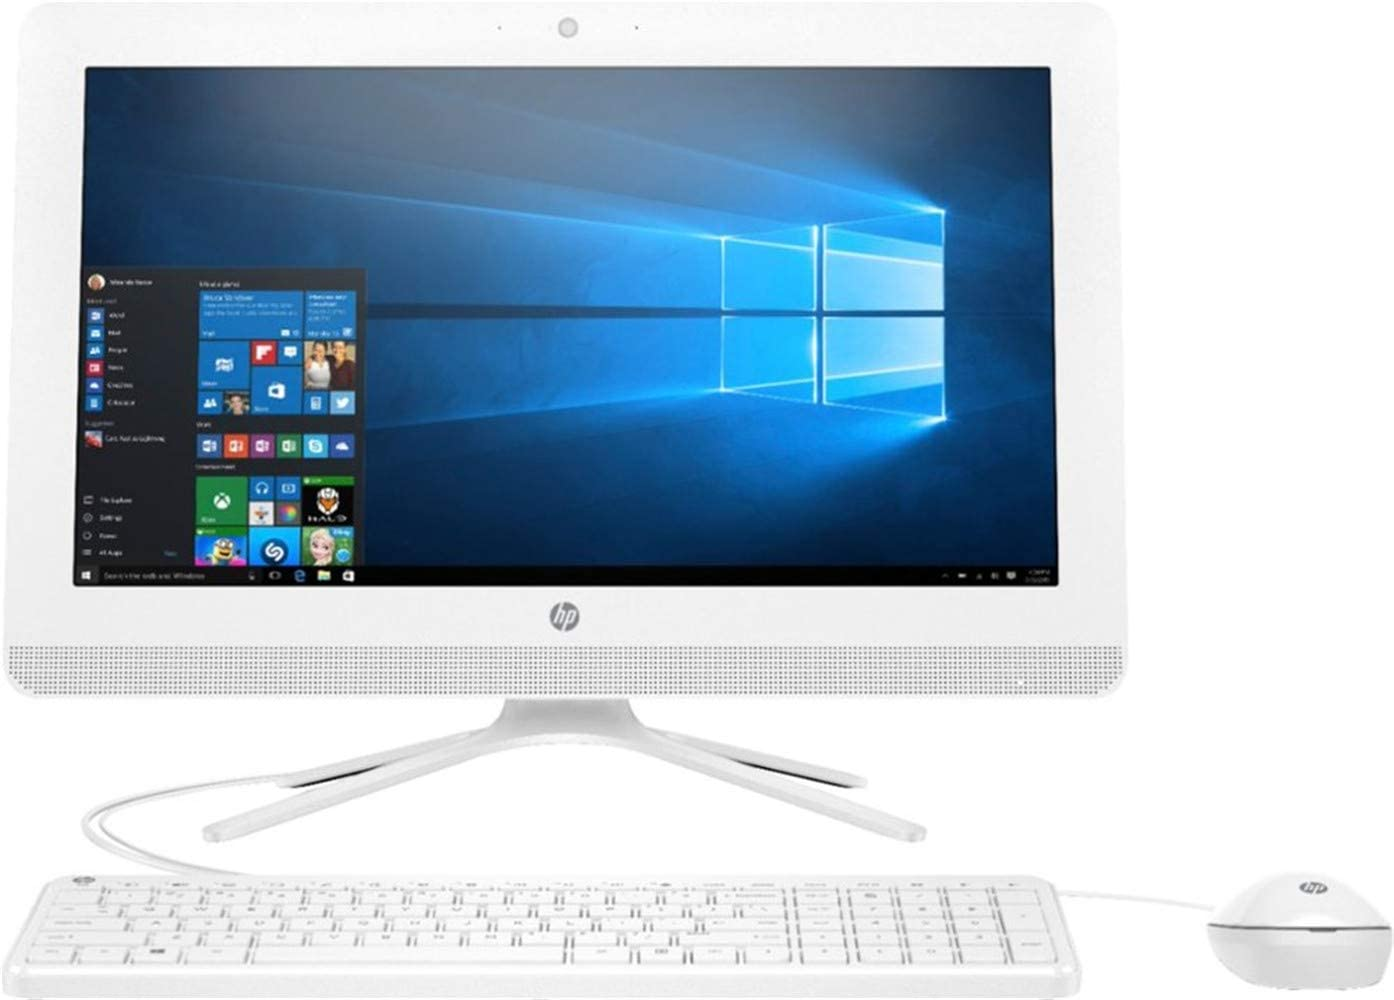 "2019 HP All-in-One Desktop Computer| 19.5"" Display